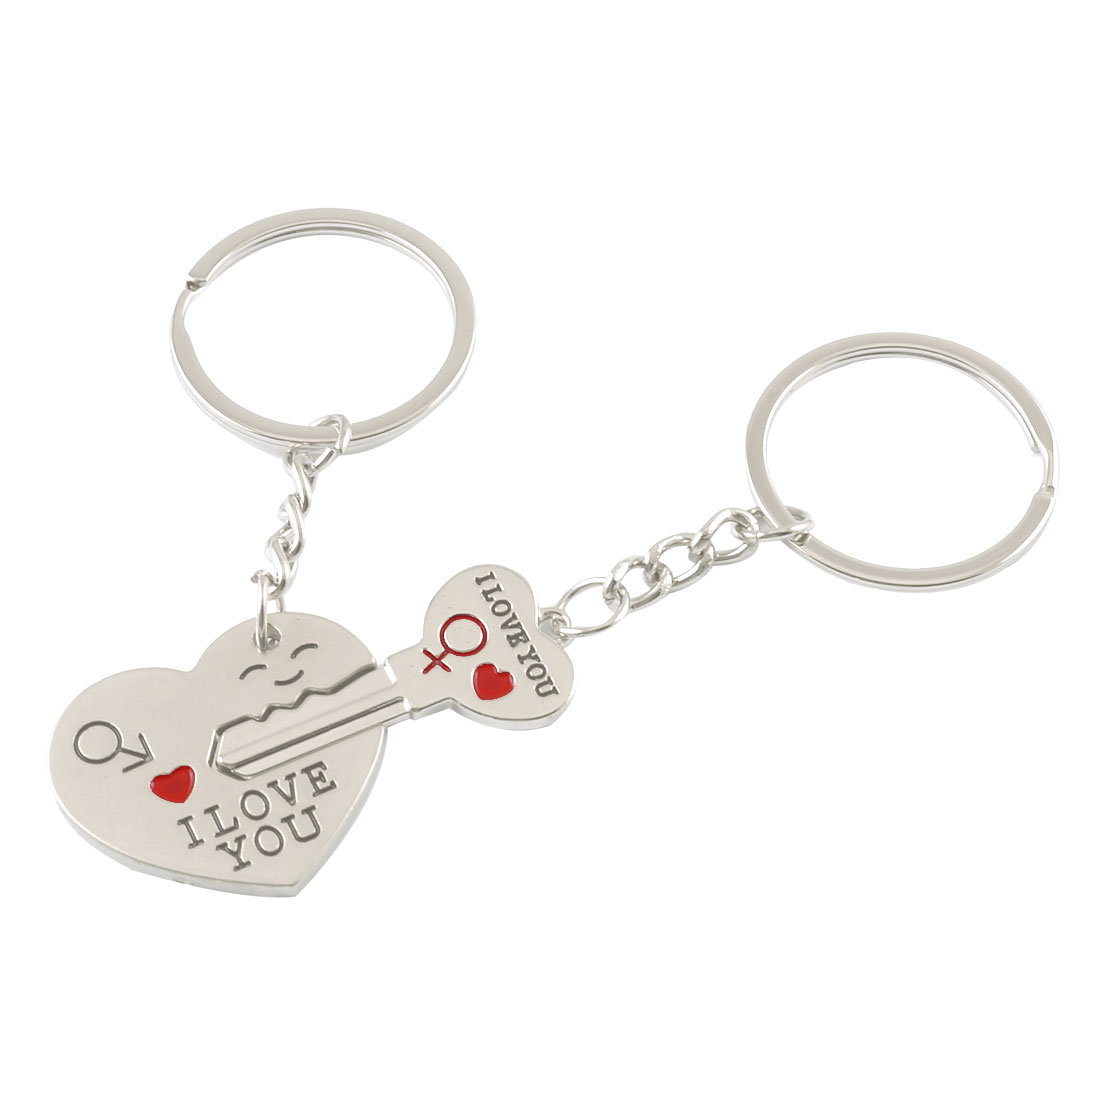 Pair Alloy I LOVE YOU Pattern Heart Key Pendant Lovers Couples Keyring Keychain